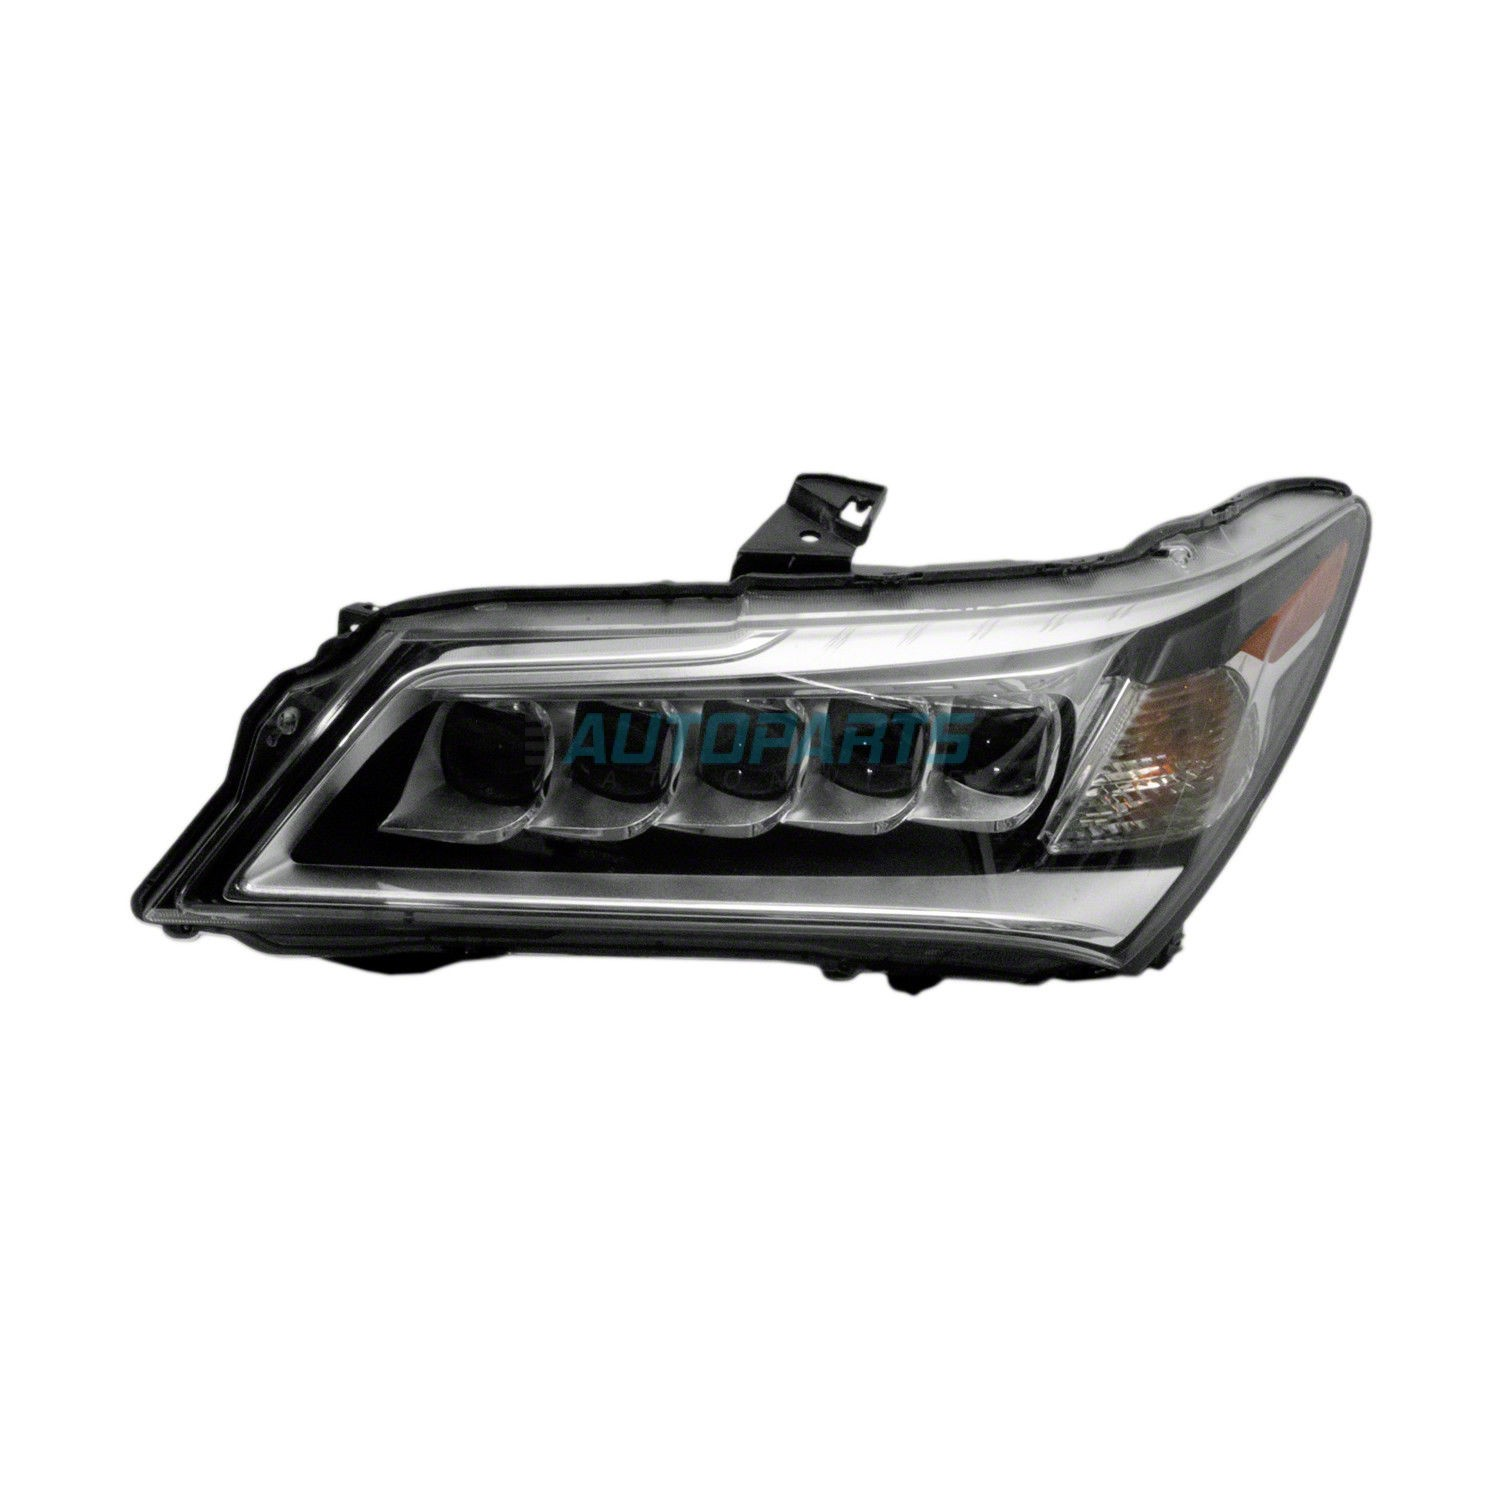 NEW LEFT SIDE LED HEADLIGHT ASSEMBLY FITS 2014-2016 ACURA